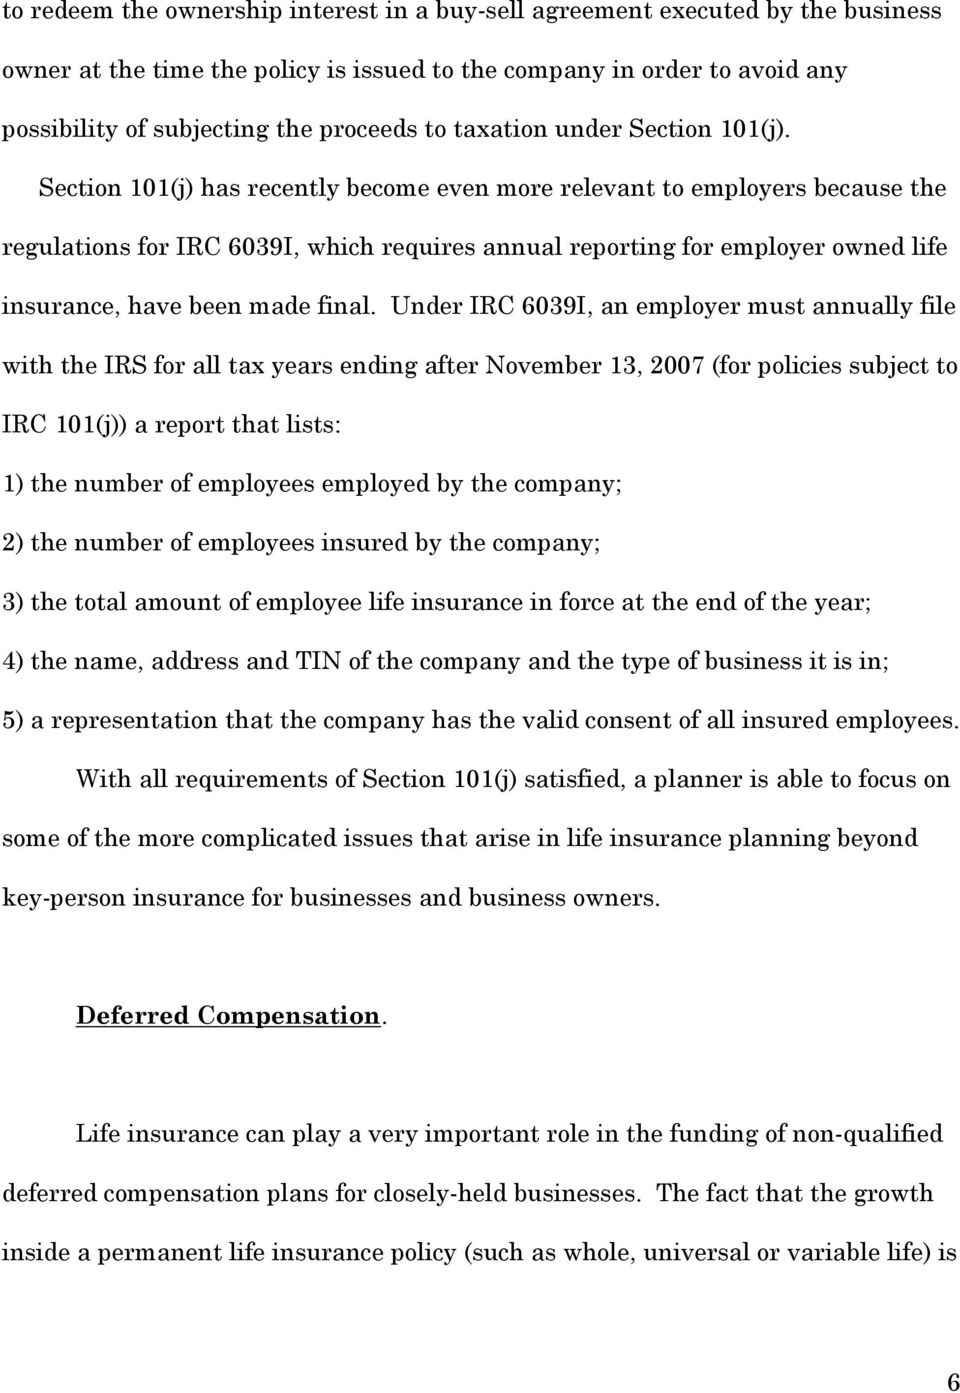 Section 101(j) has recently become even more relevant to employers because the regulations for IRC 6039I, which requires annual reporting for employer owned life insurance, have been made final.